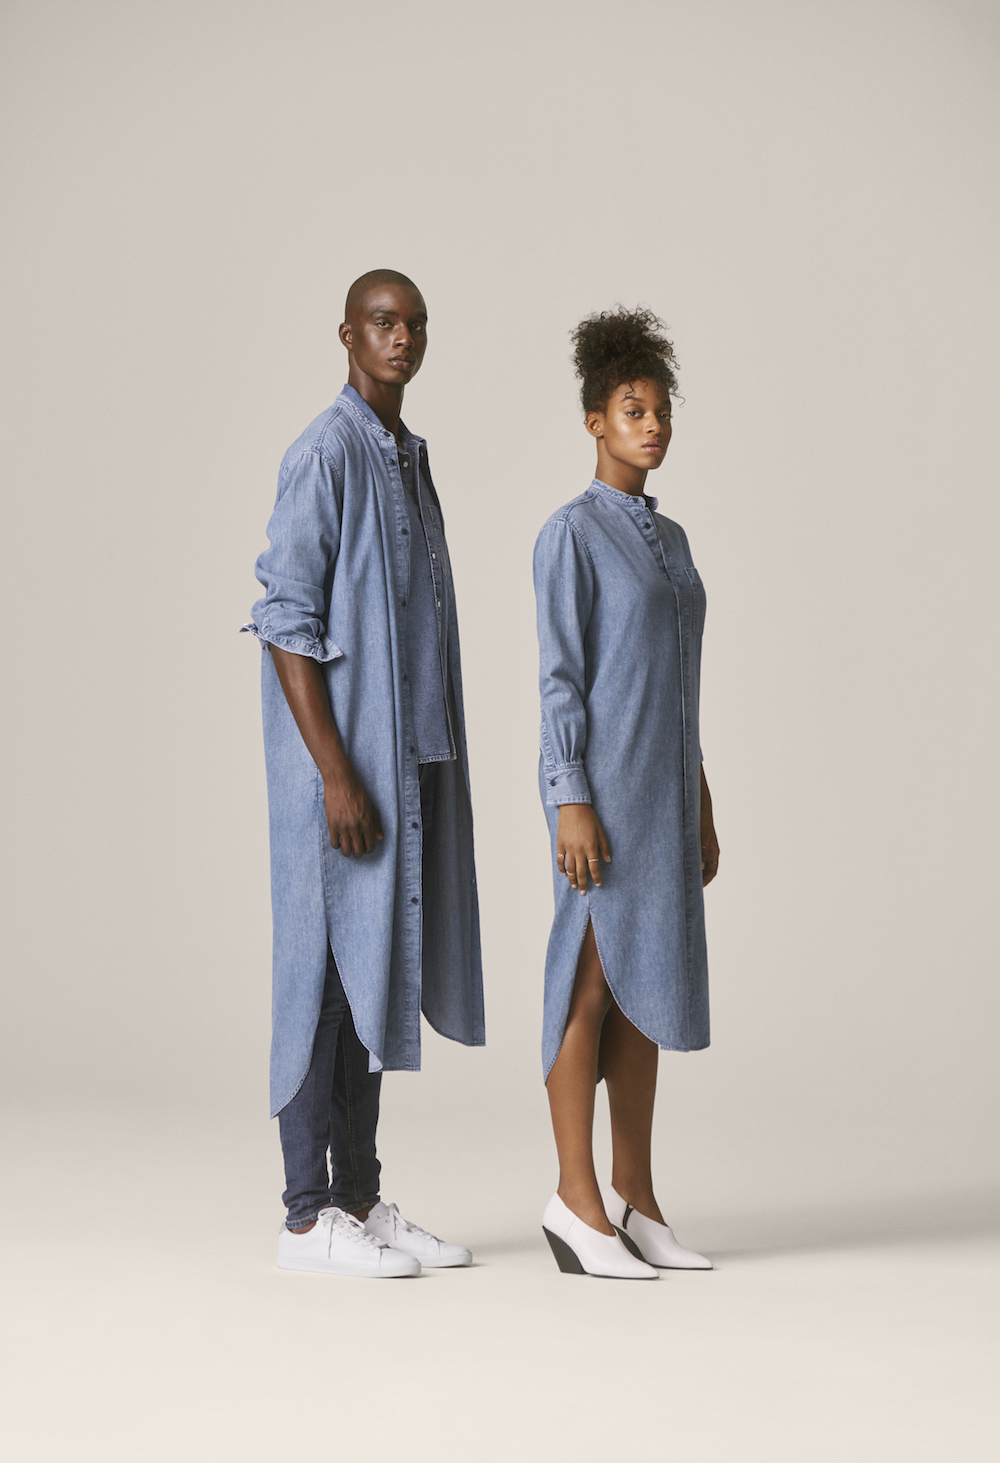 h m is breaking down gender barrier walls with a unisex denim collection hellogiggles. Black Bedroom Furniture Sets. Home Design Ideas